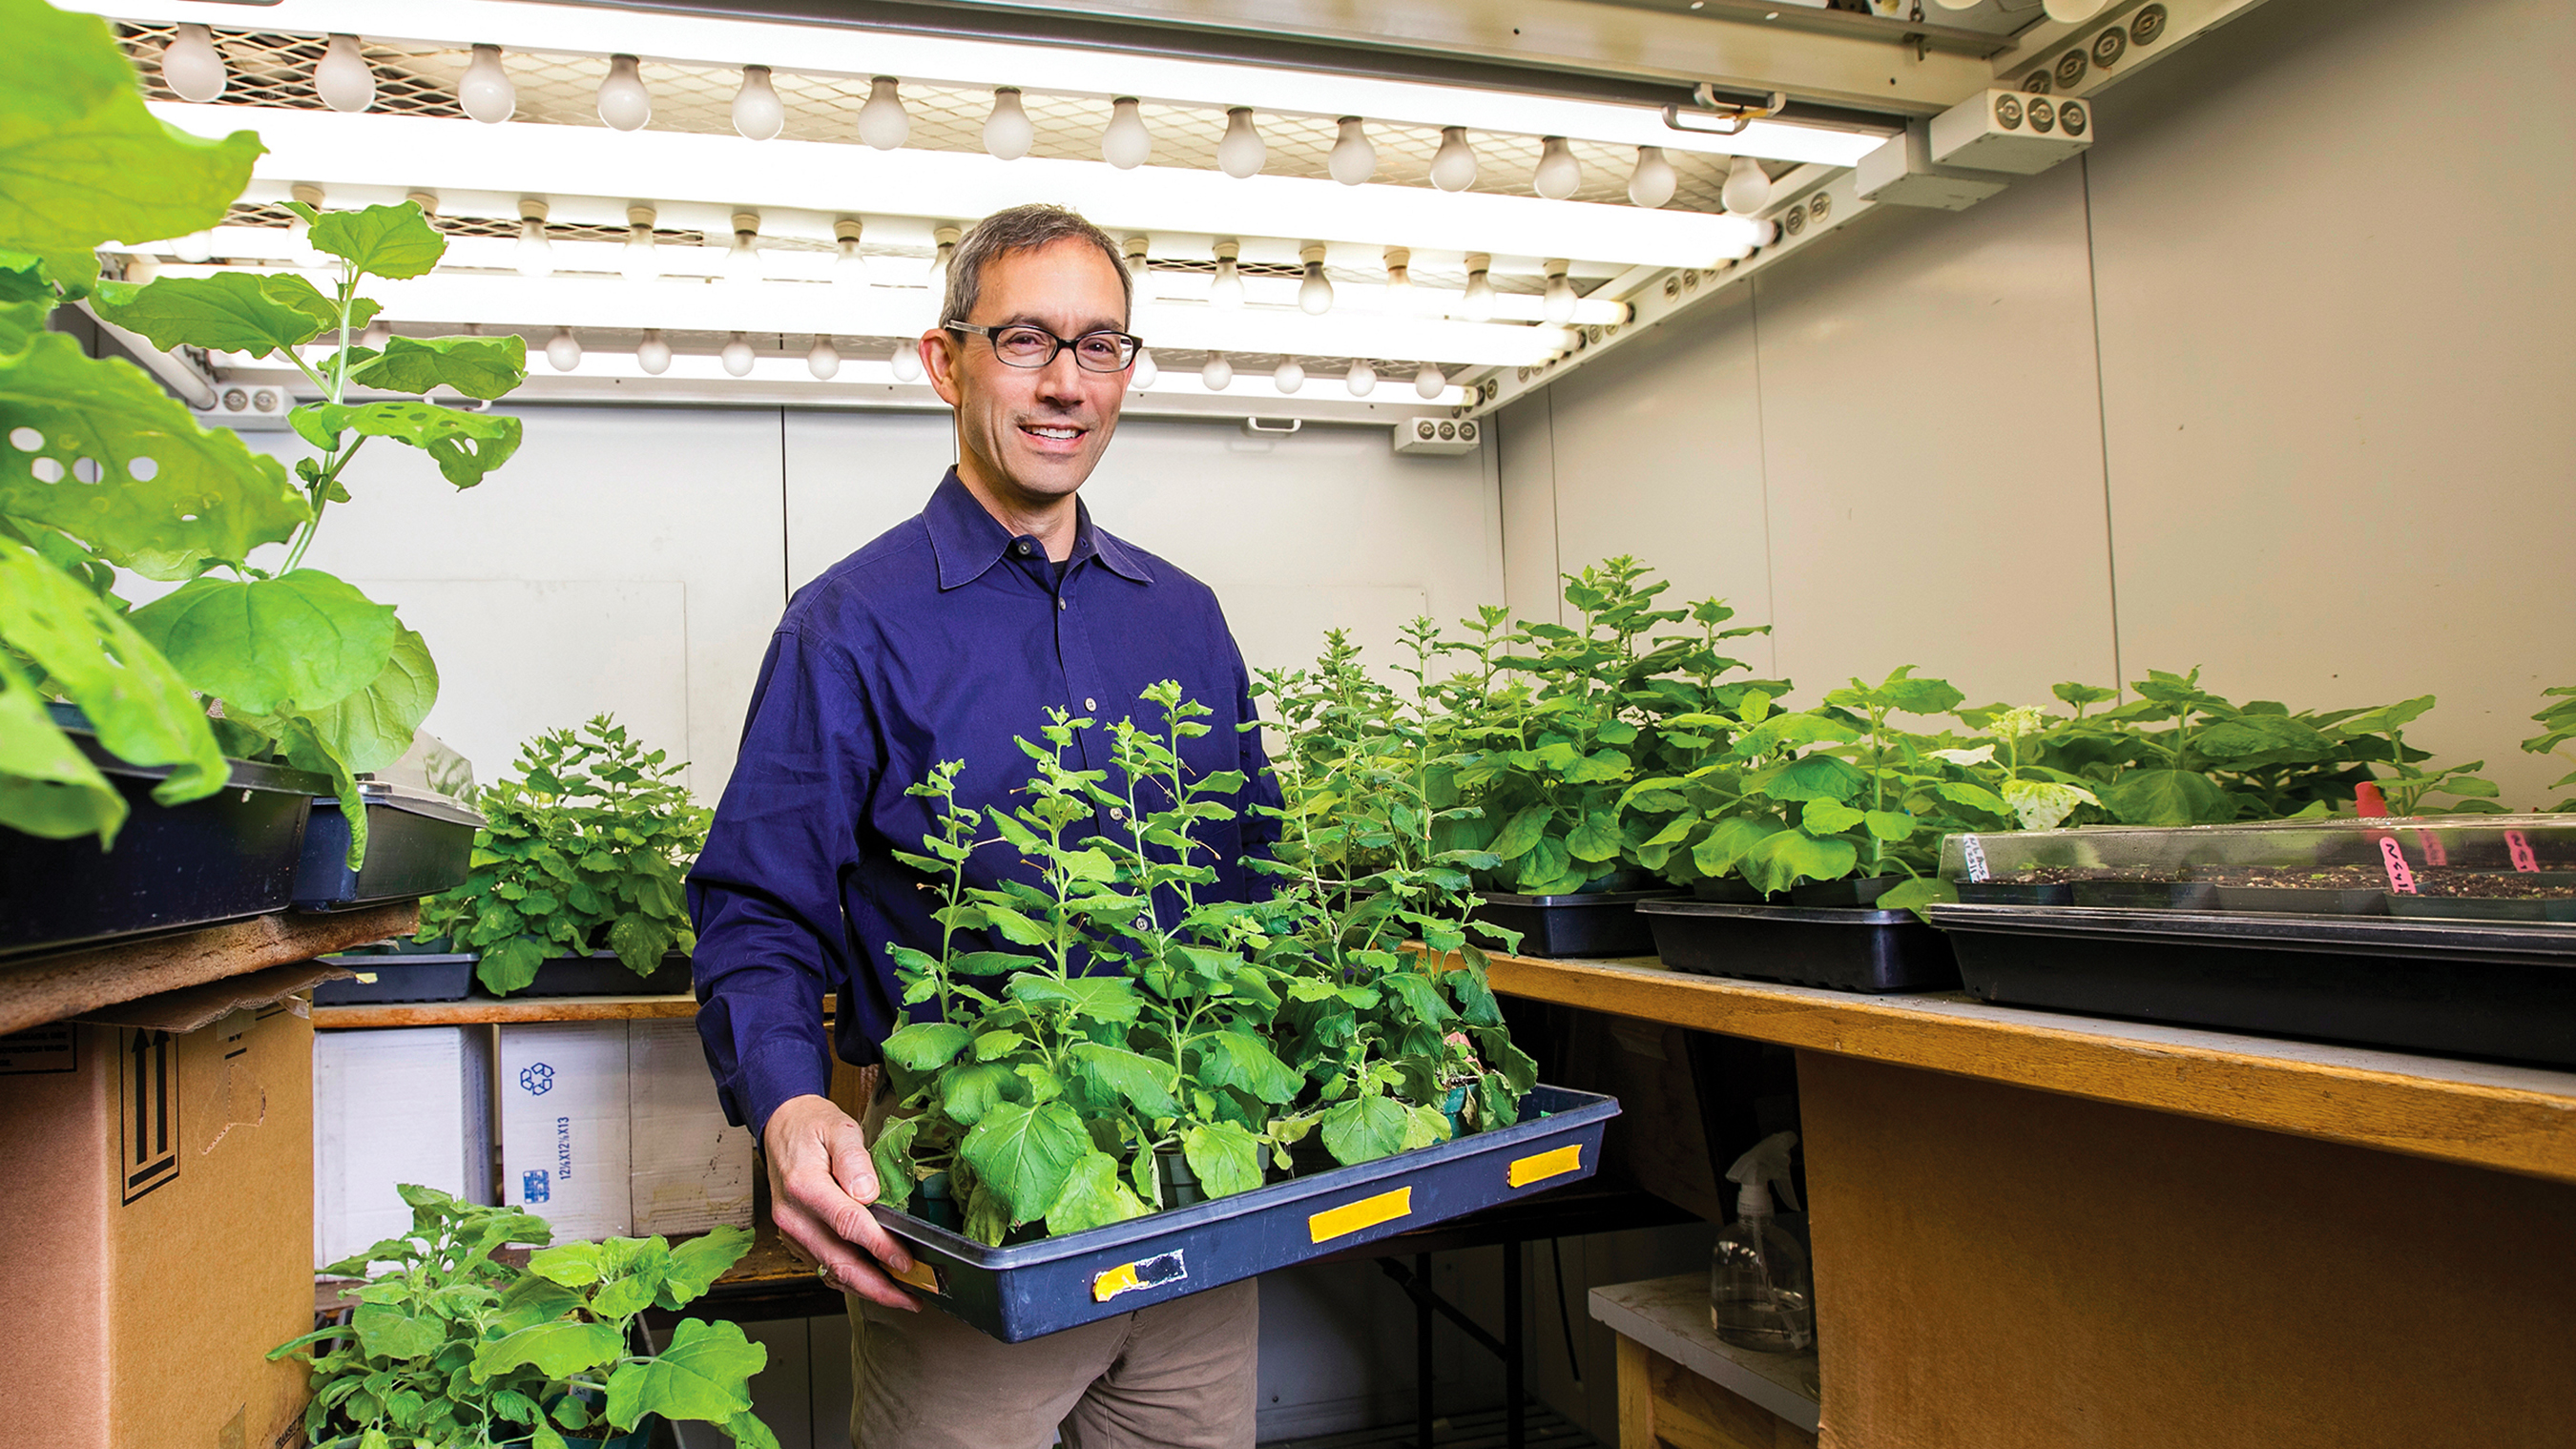 Researcher Kris Niyogi with research plants